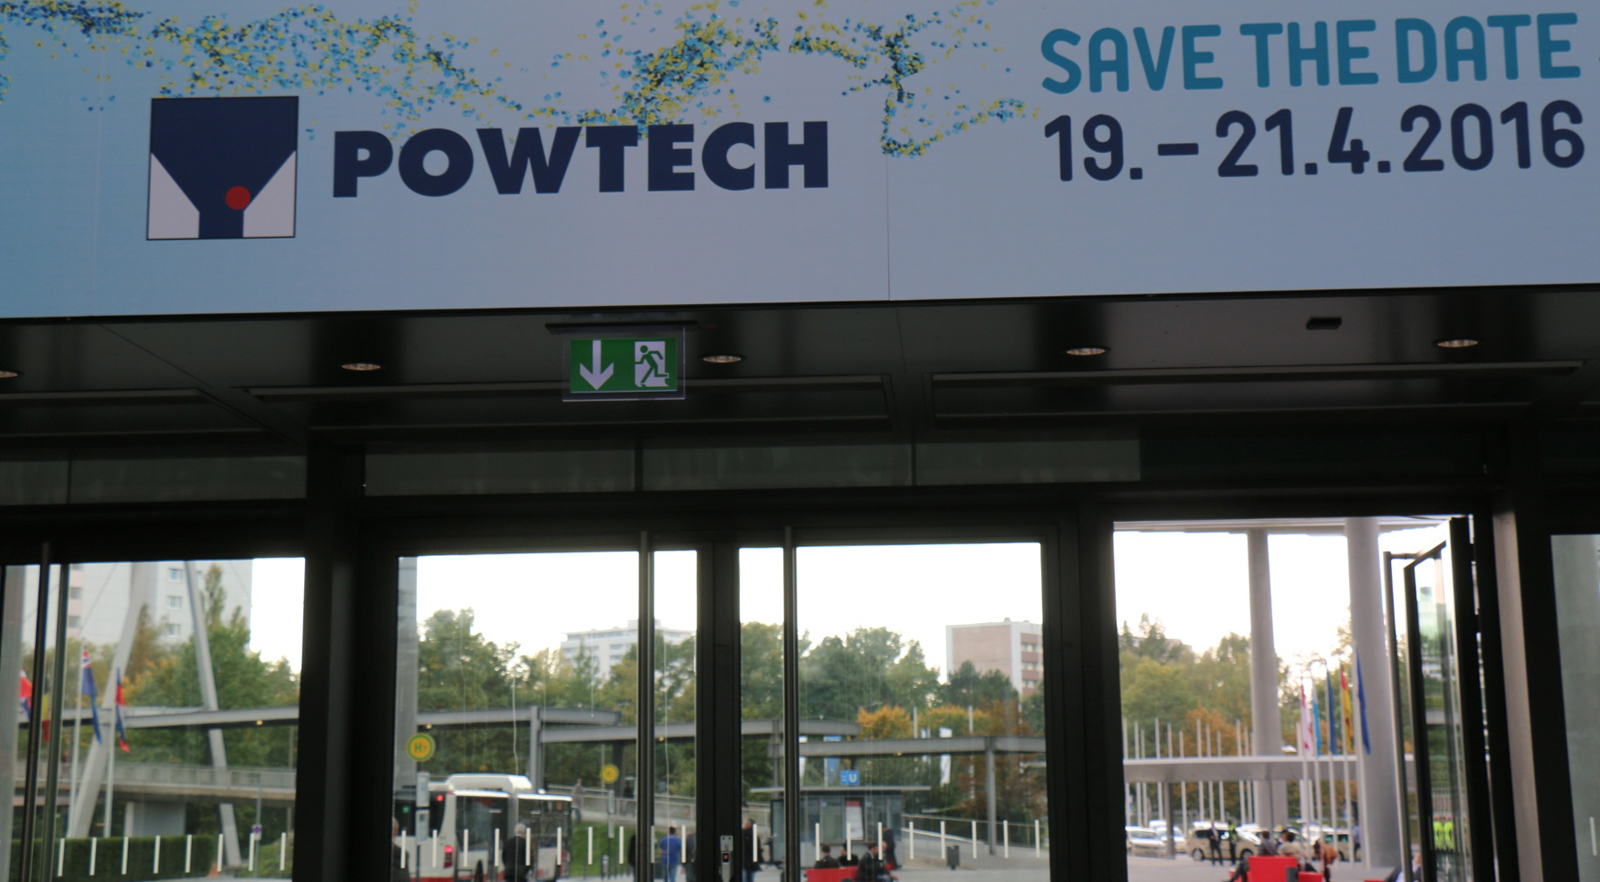 Save_the_Date_POWTECH_2016